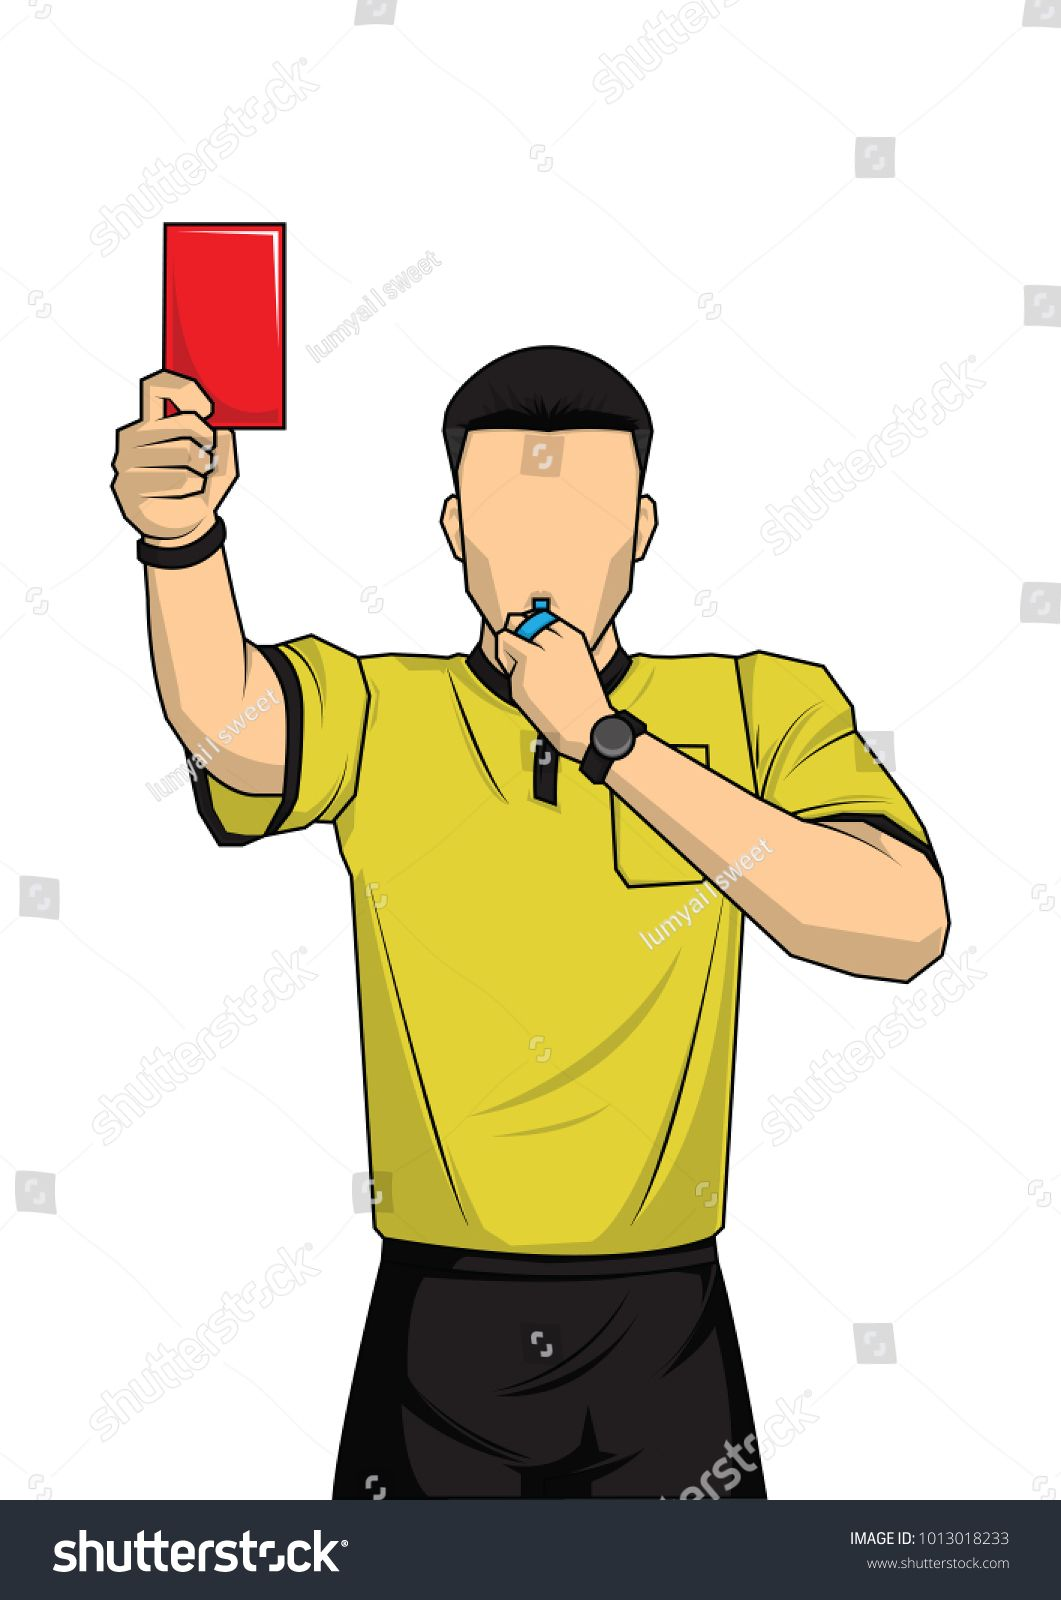 Soccer Referee Showing Red Card Referee Stock Vector Throughout Soccer Referee Game Card Template Best Template Ideas In 2020 Soccer Referee Red Card Soccer